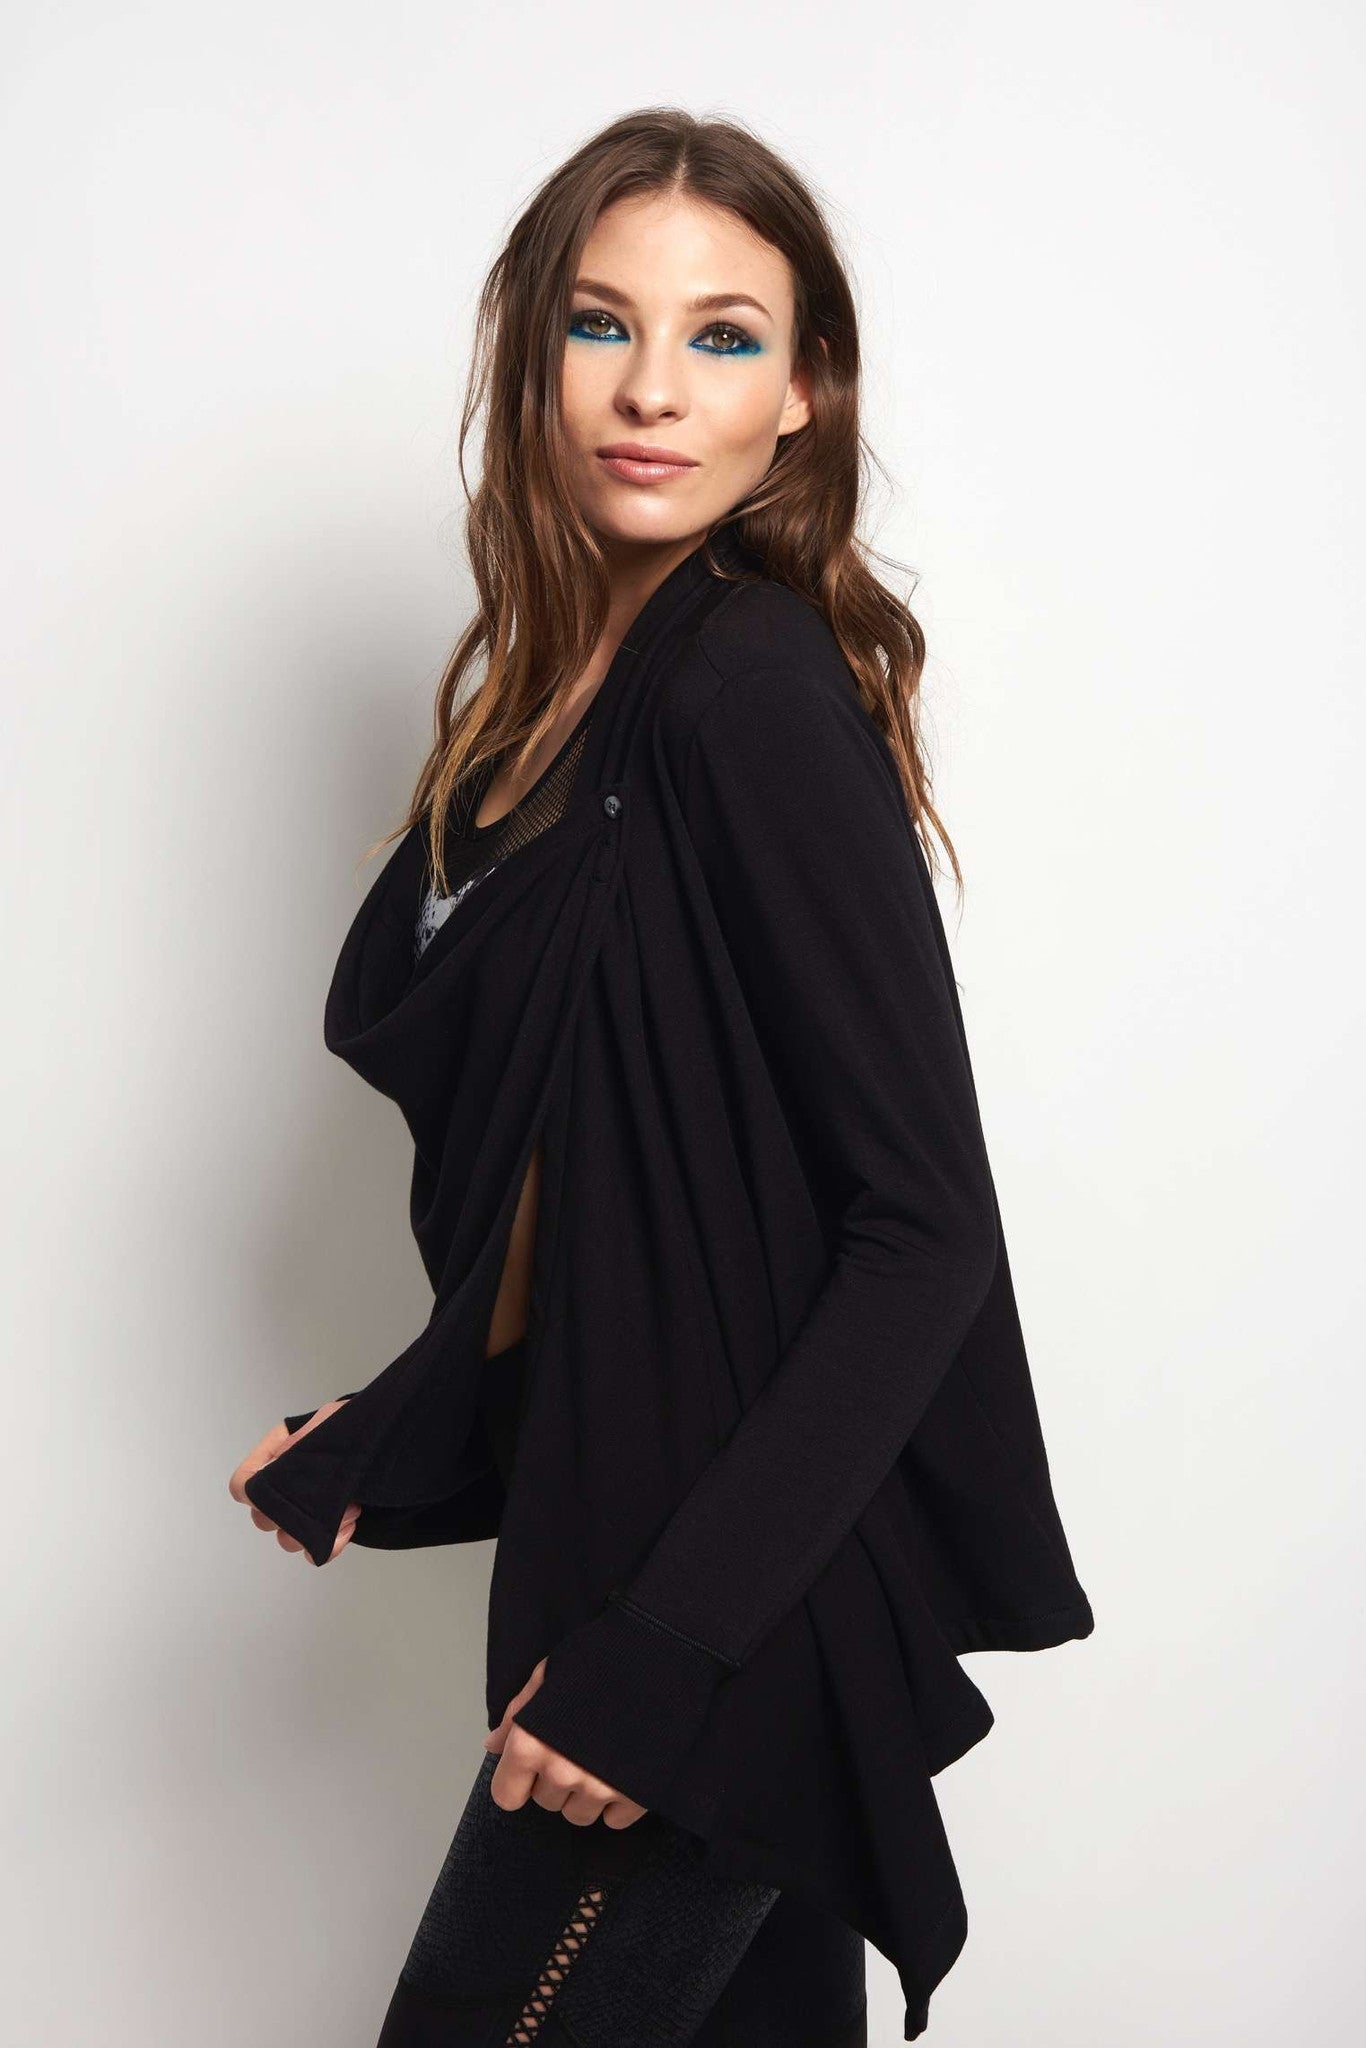 Beyond Yoga Stone's Throw Over Drape Cardigan - Black image 2 - The Sports Edit